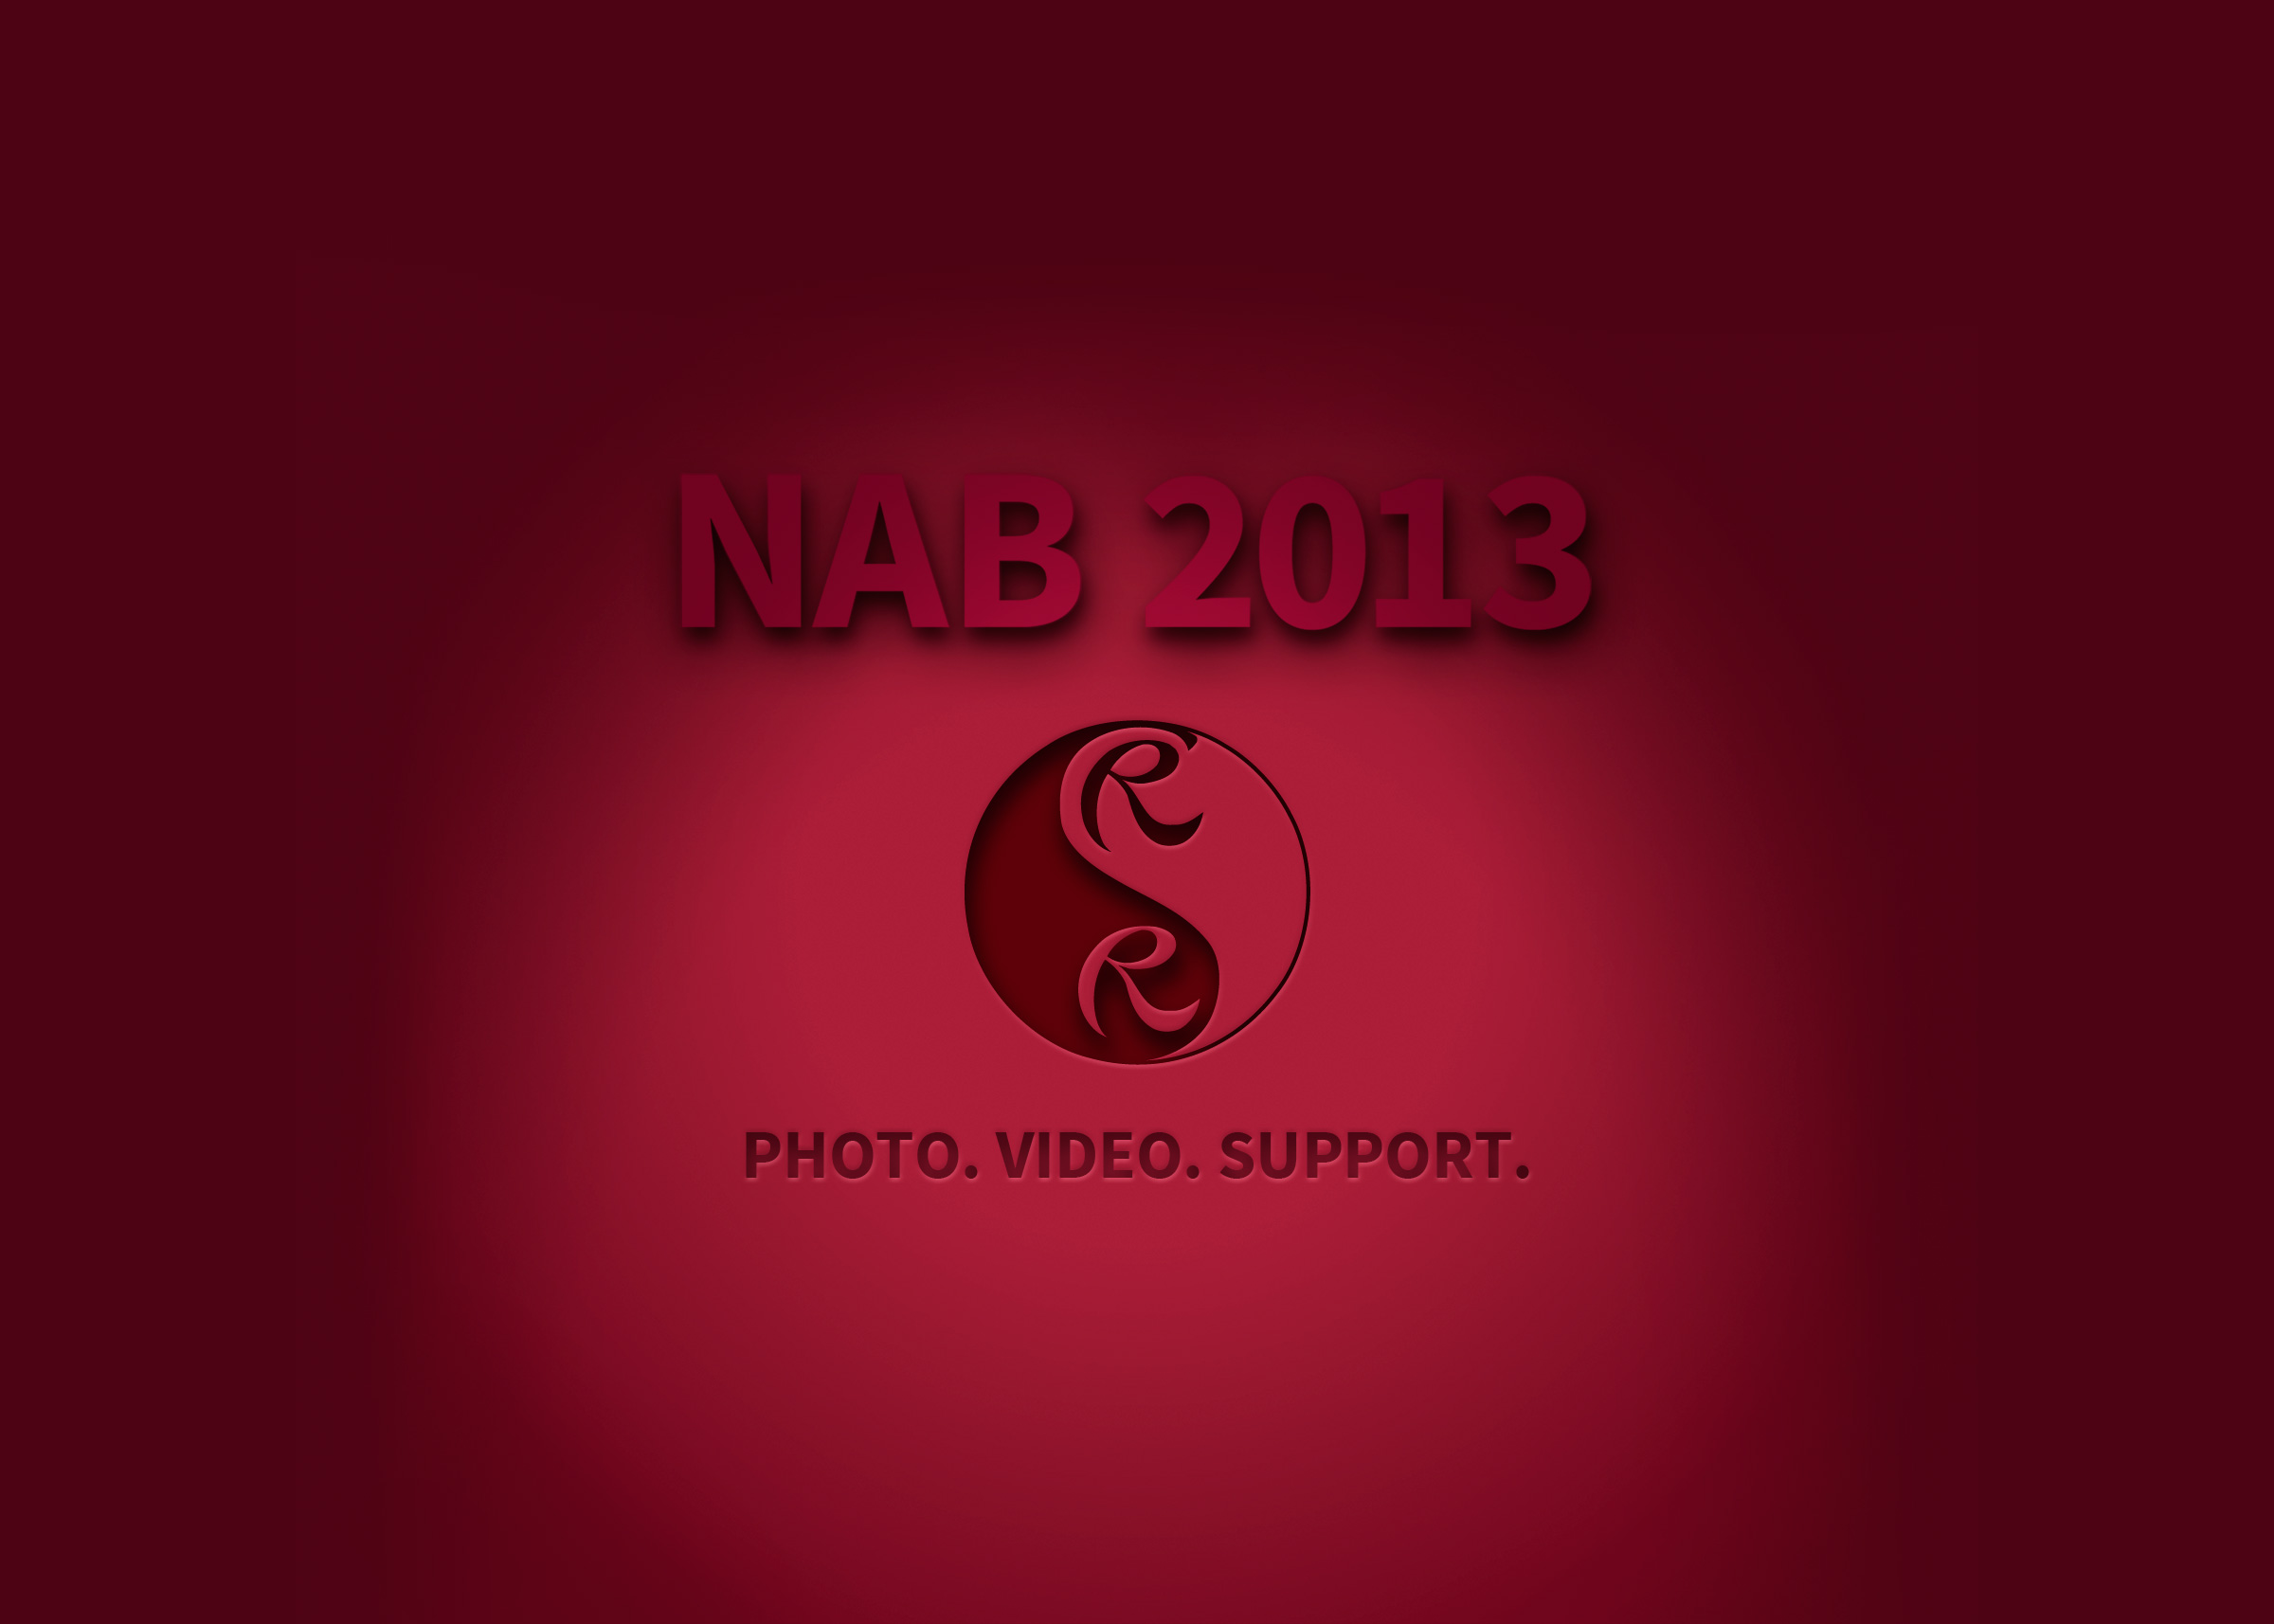 RRS will be attending NAB 2013.